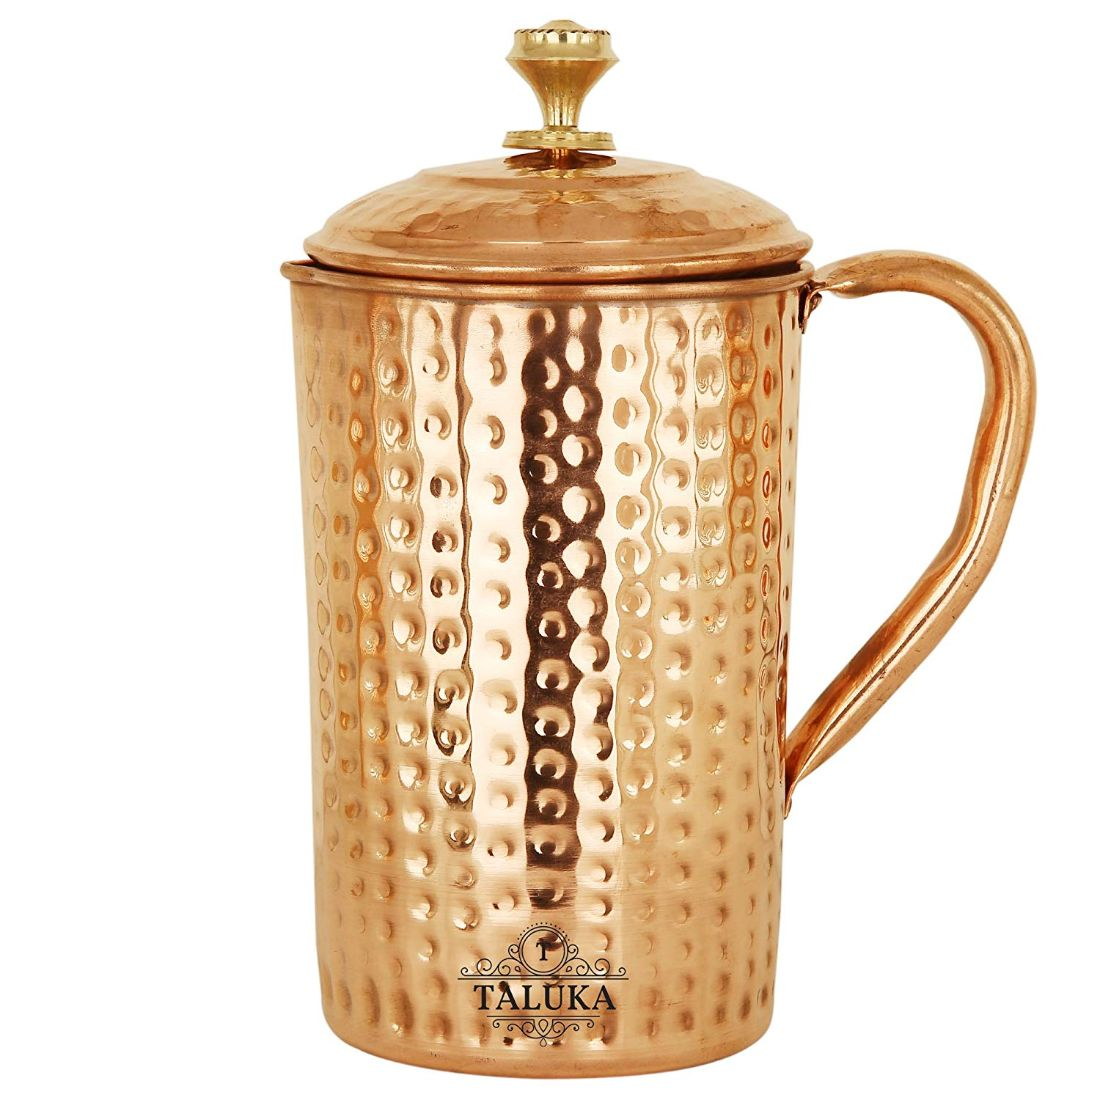 Copper Hammer Jug Pitcher 1.7 Liter With Water Pot 16 Liter Tank 1 Glass 350 ML